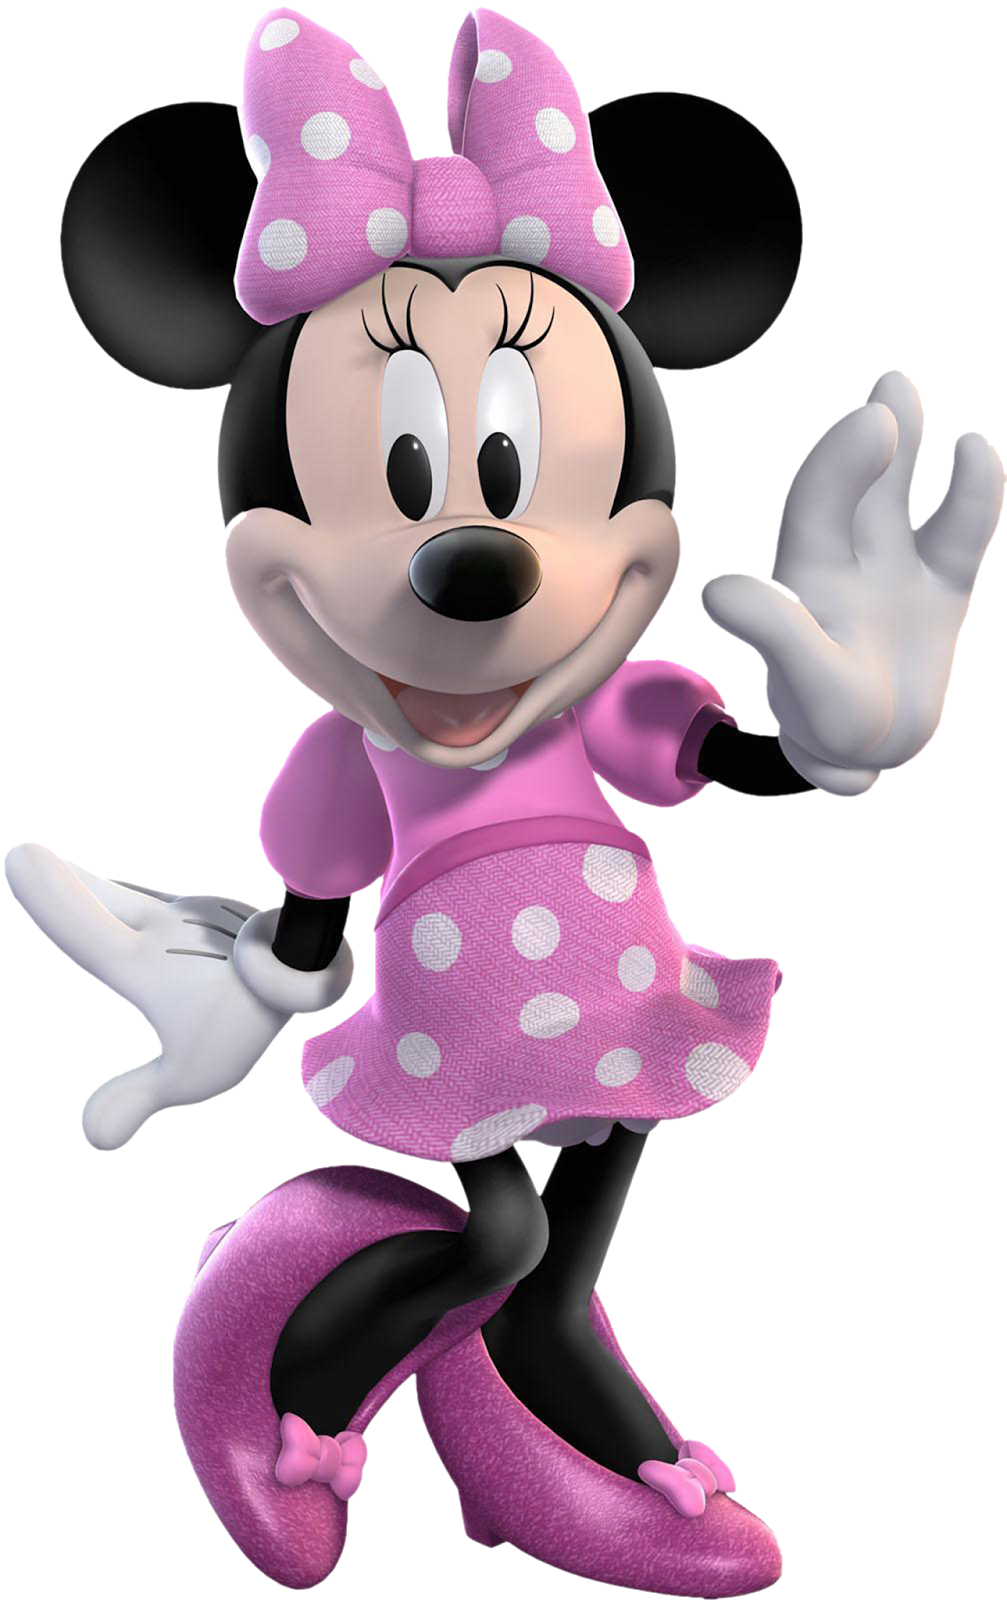 Minnie mouse png pink. Transparent images all free